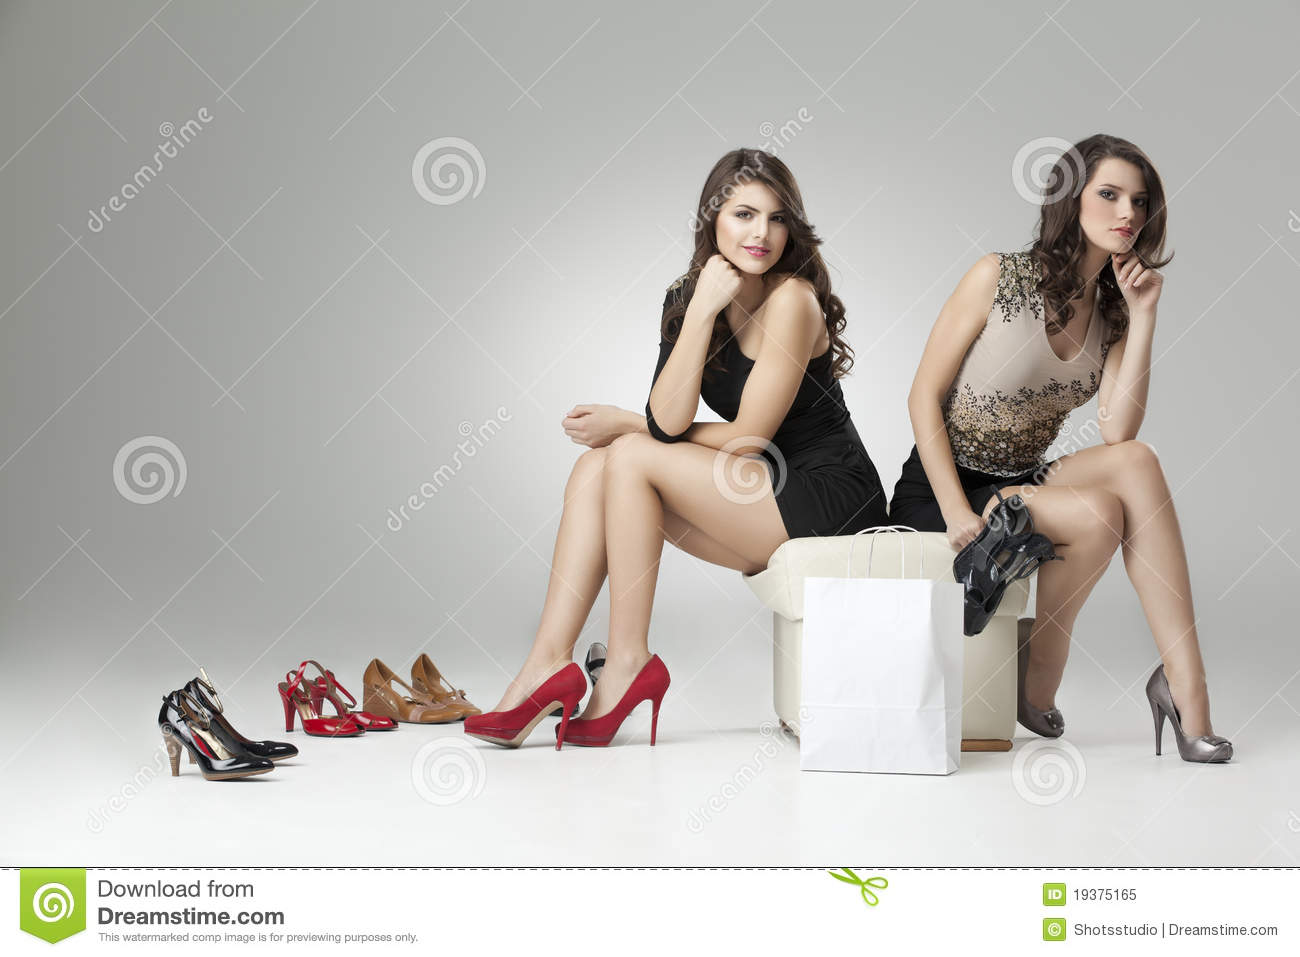 Female High Heels